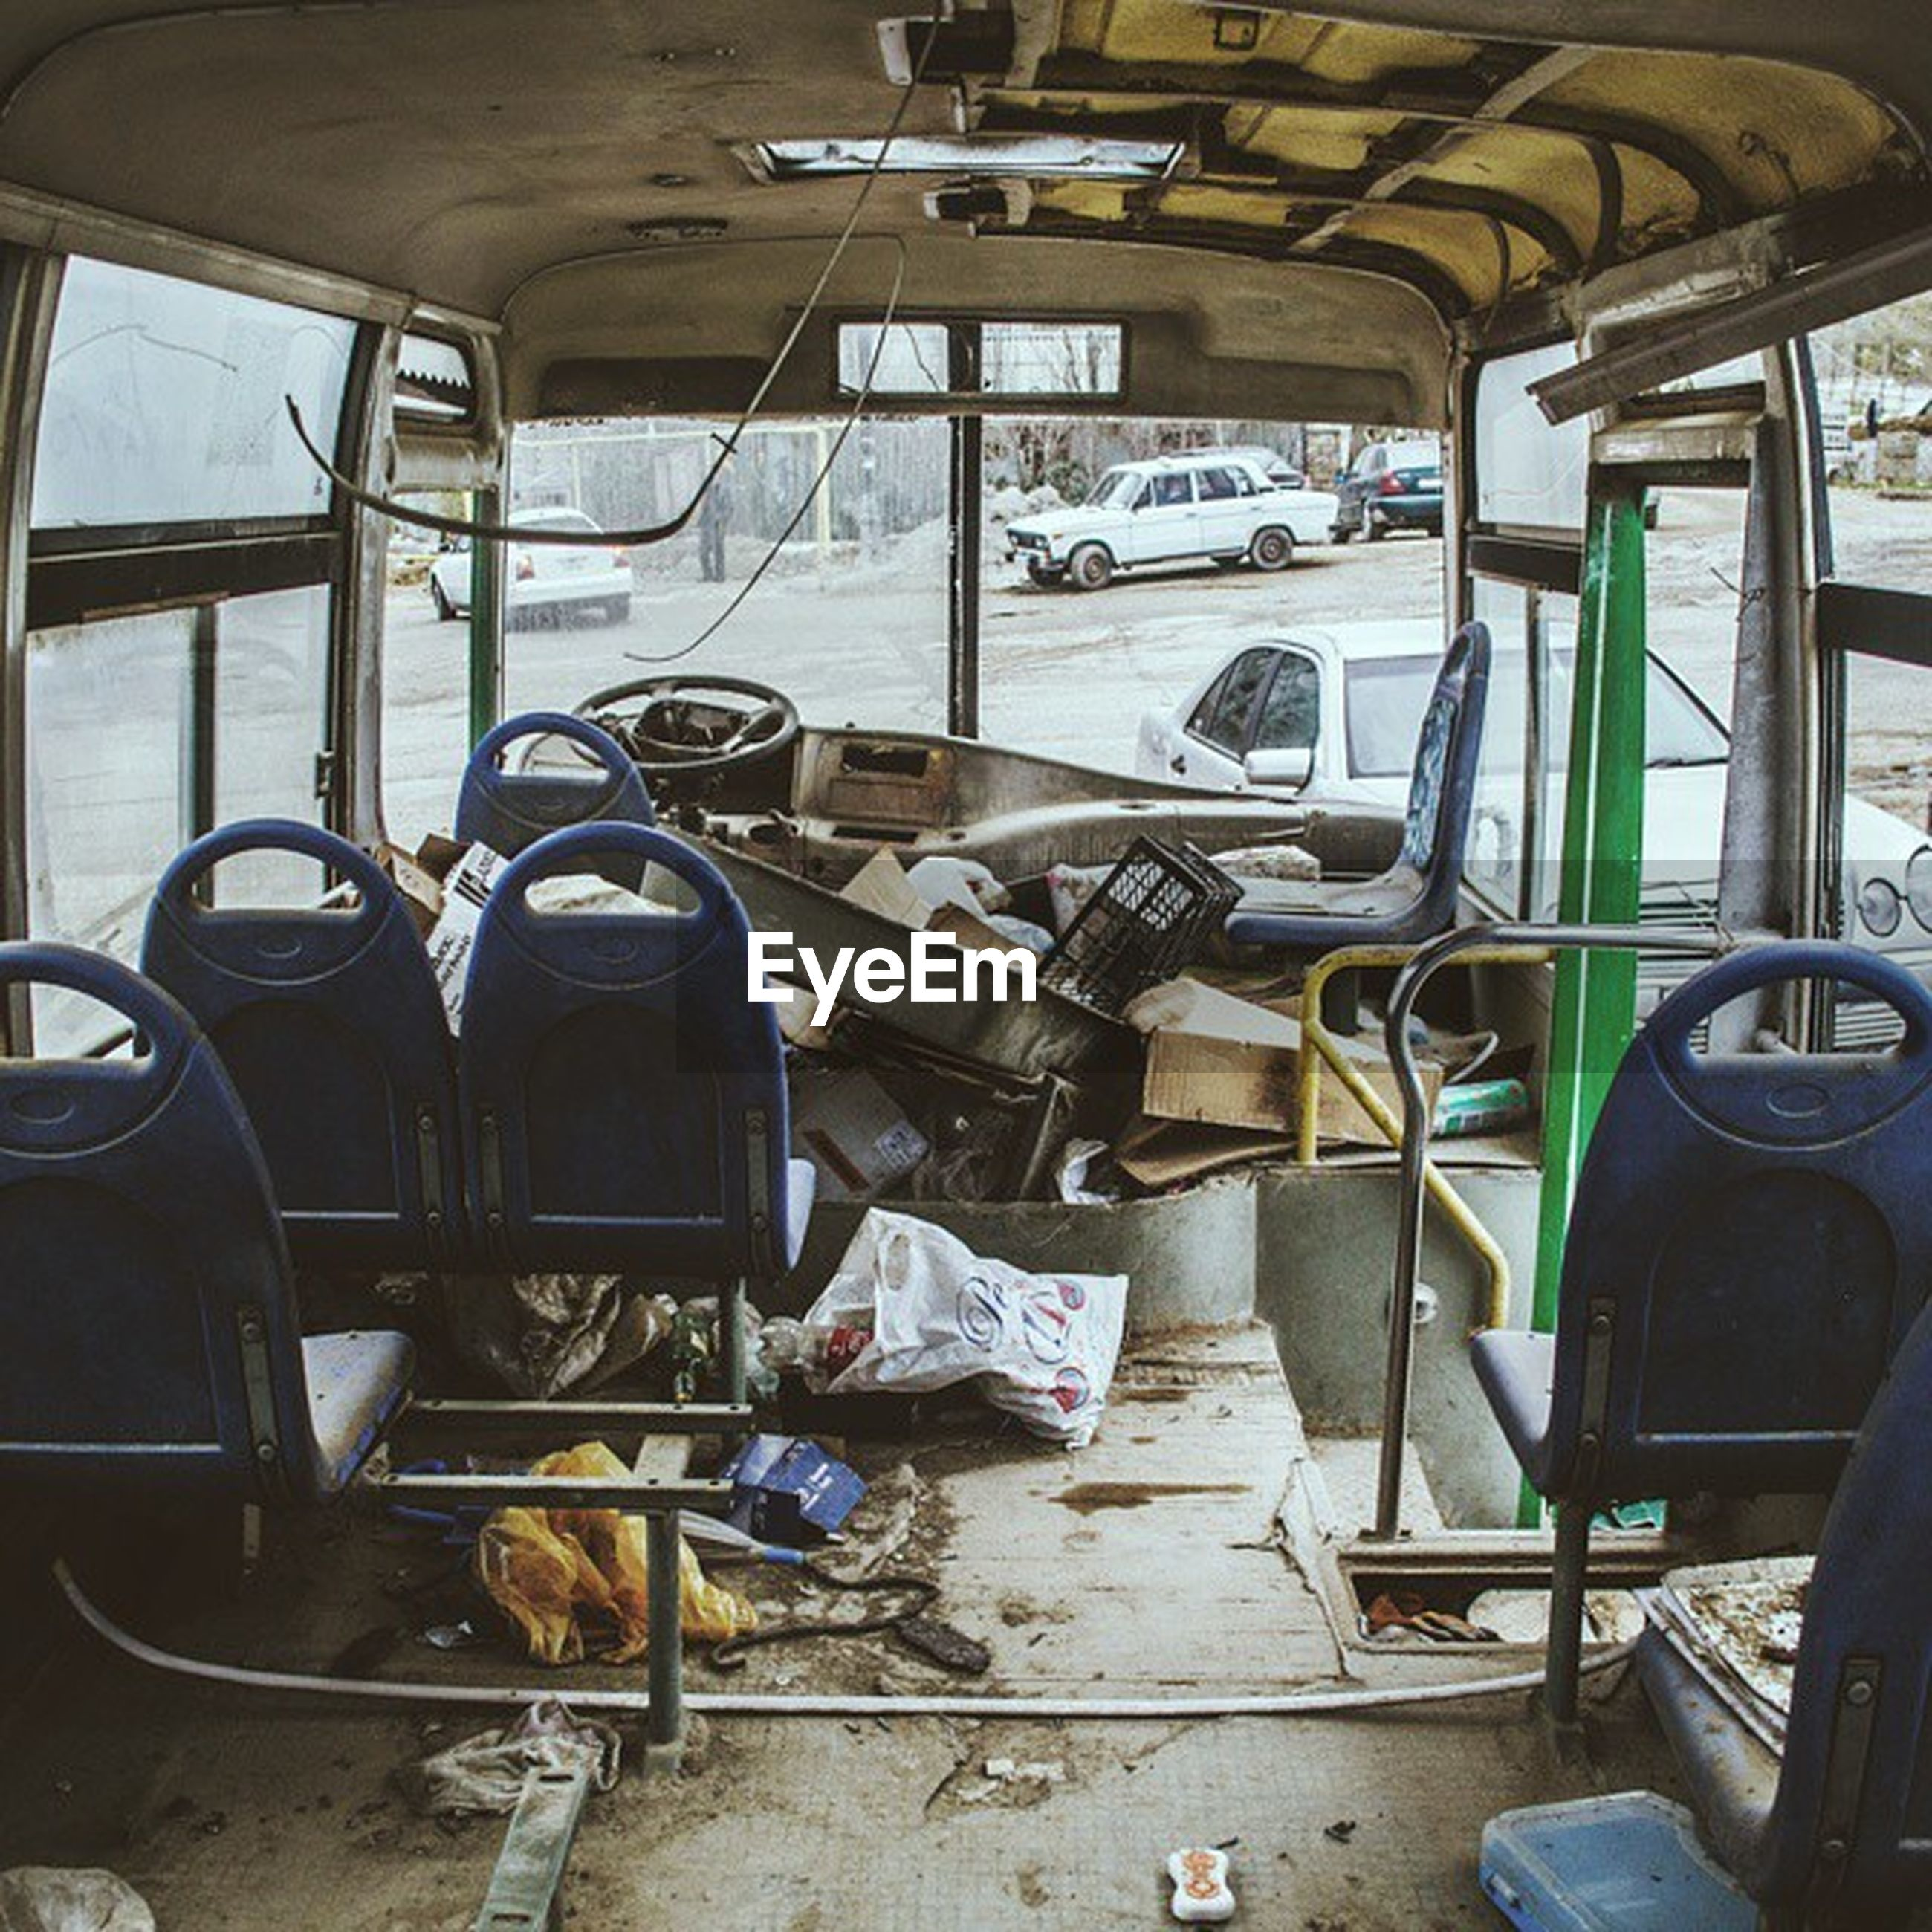 transportation, indoors, mode of transport, vehicle seat, vehicle interior, land vehicle, interior, absence, public transportation, train - vehicle, empty, chair, abandoned, travel, seat, window, car, obsolete, stationary, bus